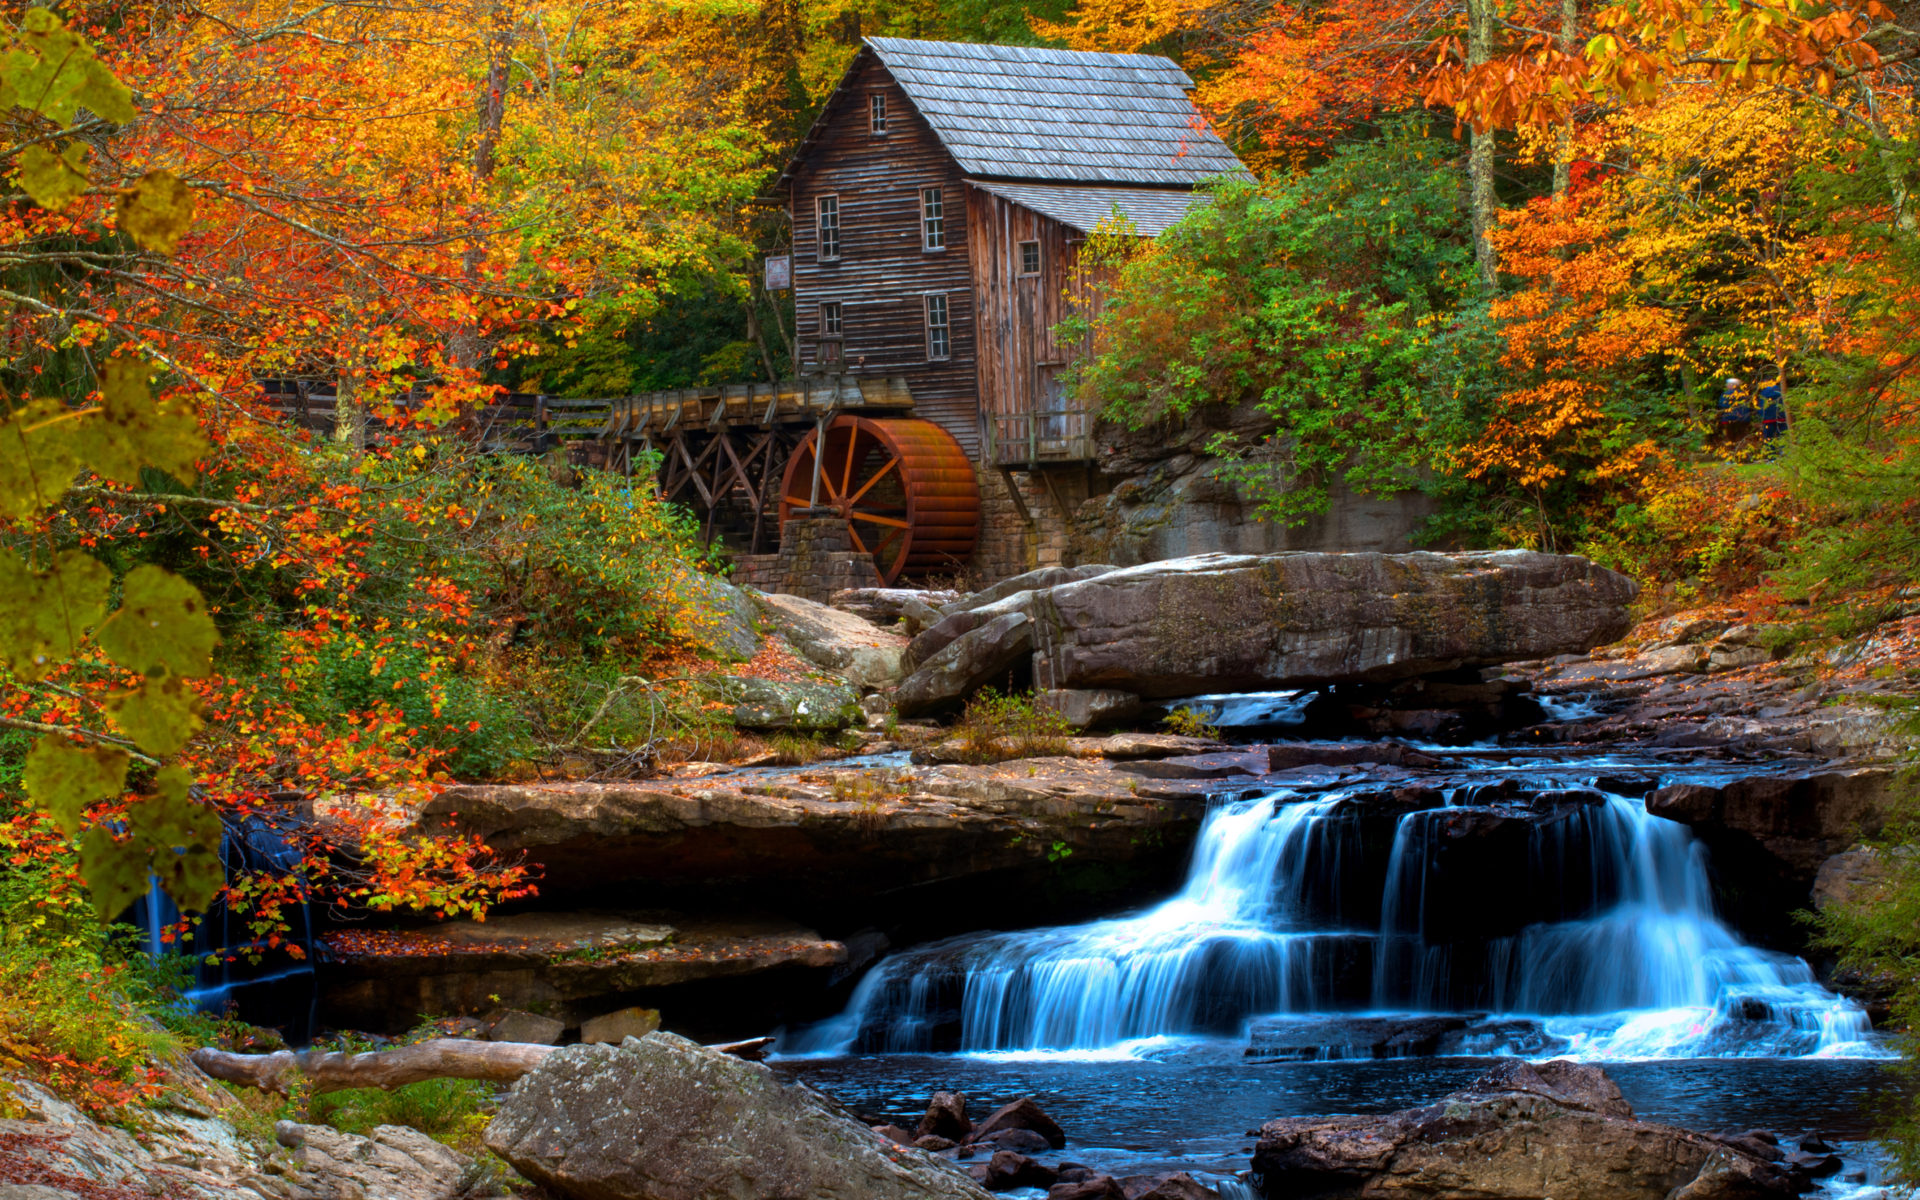 Maine Fall Foliage Wallpaper Old Wooden Mill Water Flow Rock Waterfall Hd Wallpaper For